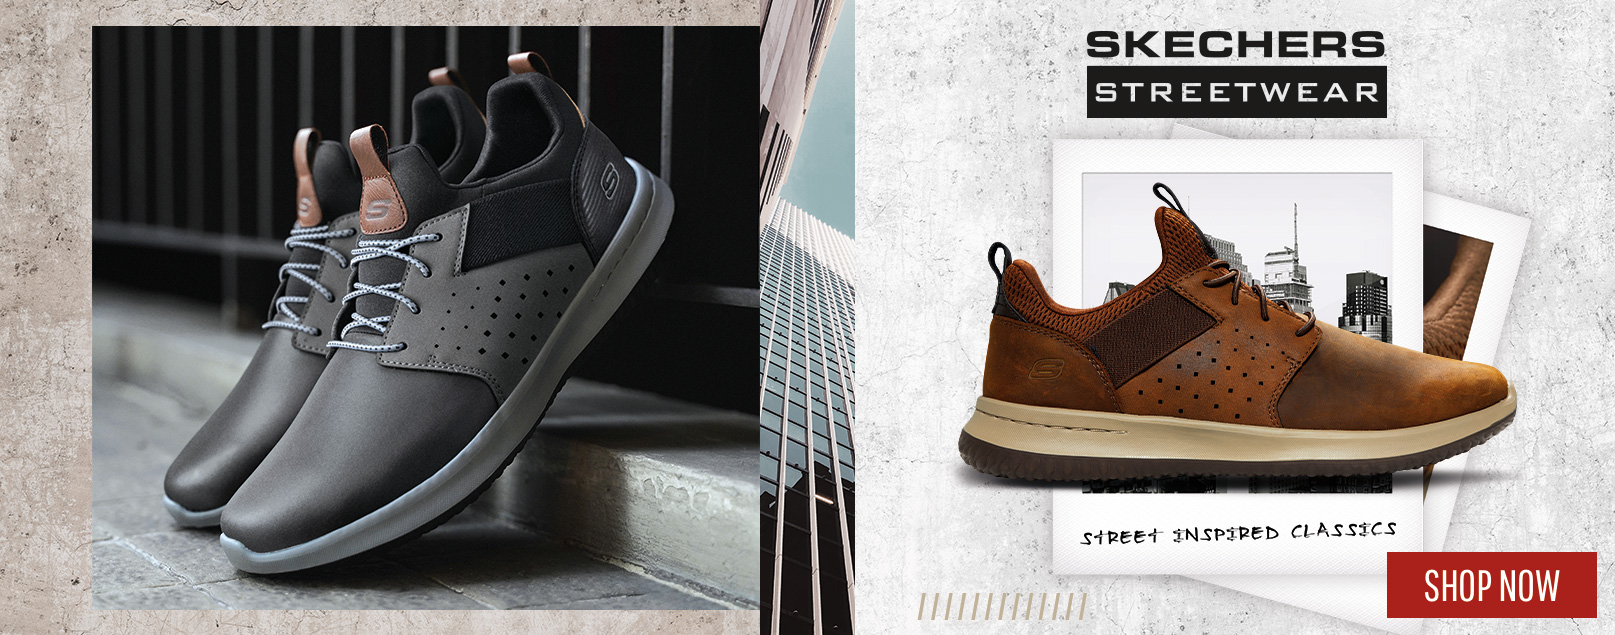 Find the latest Skechers Streetwear shoes with street-inspired style and long lasting comfort.  Great looking casual shoes with Air Cooled Memory Foam insole comfort.